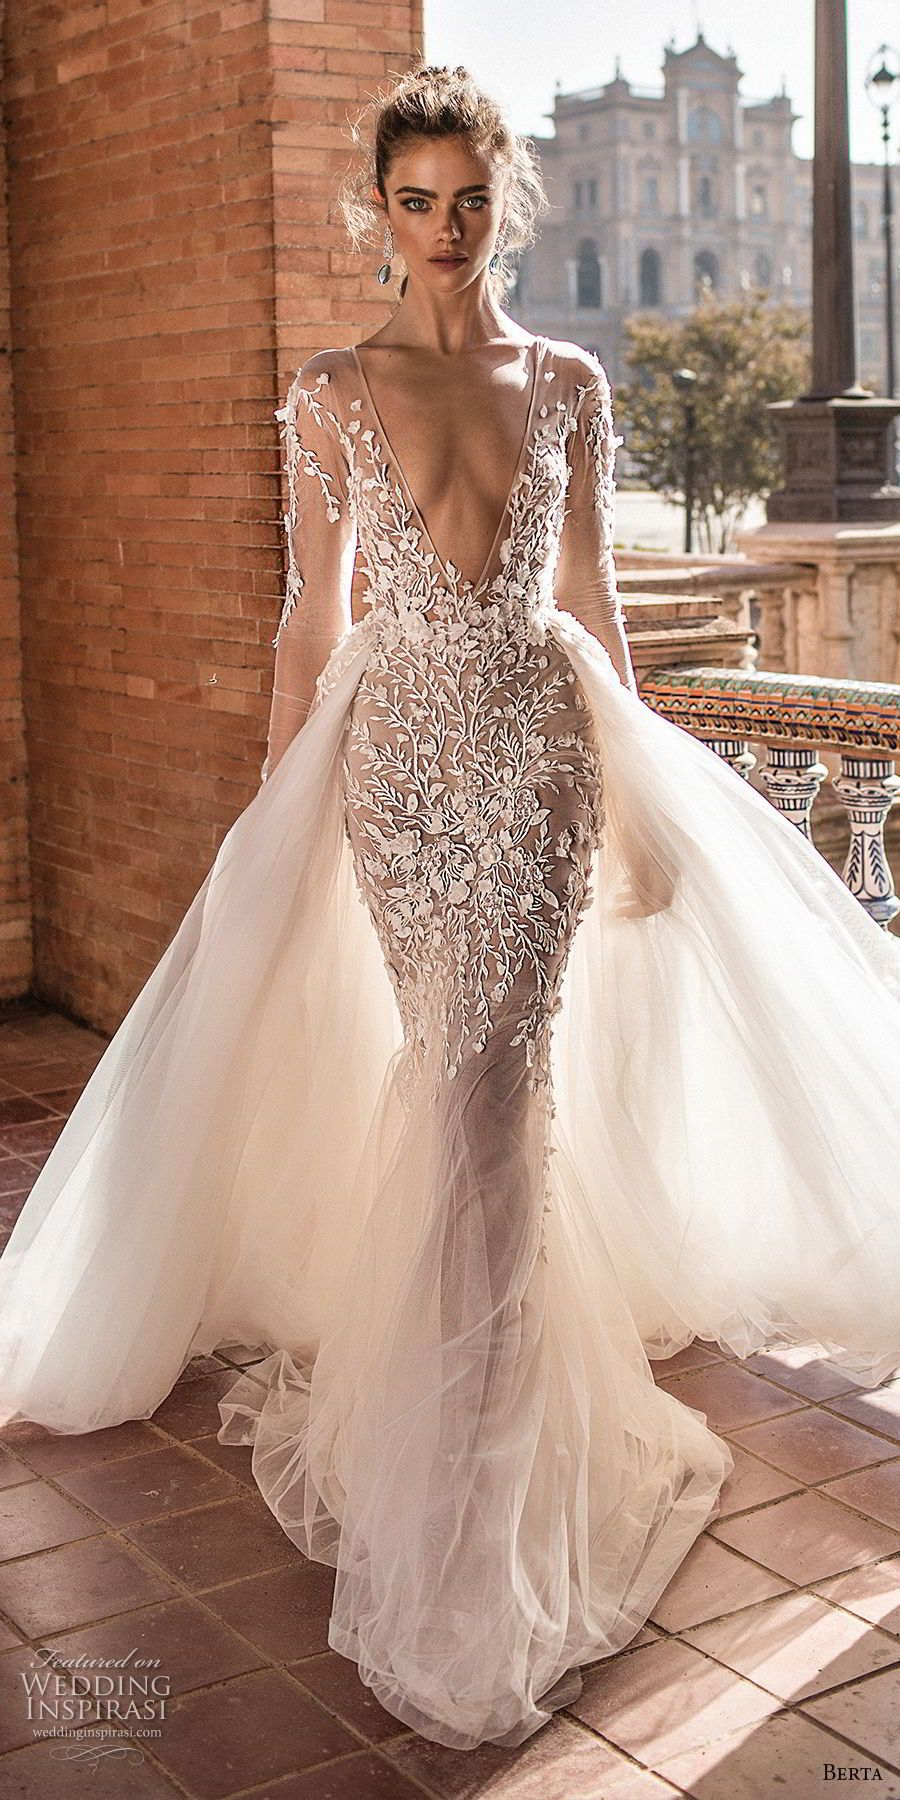 berta fall 2018 bridal long sleeves deep v neck heavily embellished bodice  sexy romantic fit and flare mermaid wedding dress a line overskirt open  scoop ... 200c6588ff20